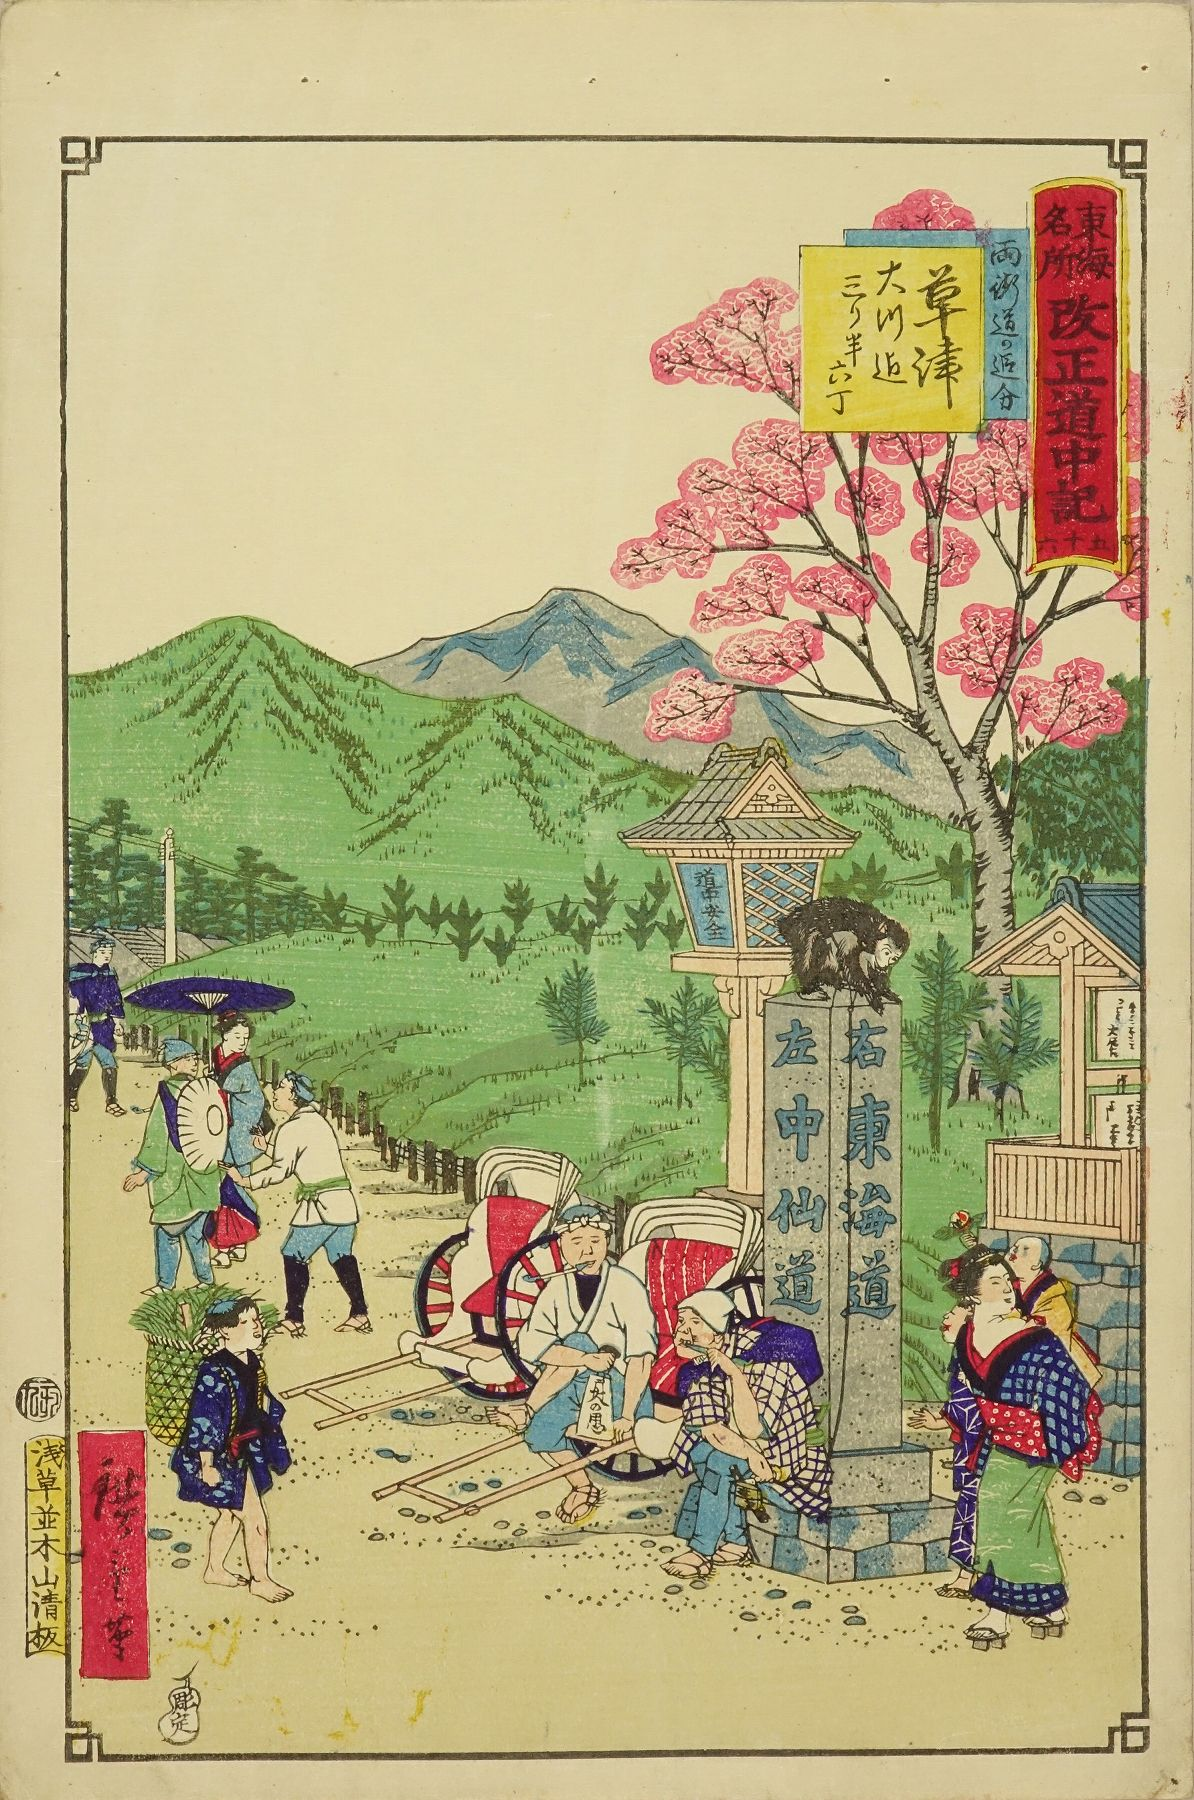 HIROSHIGE III Kusatsu, Branch of two highways, from <i>Tokai meisho kaisei dochukii</i> (Newly edited travel story of famous places of the Tokaido)